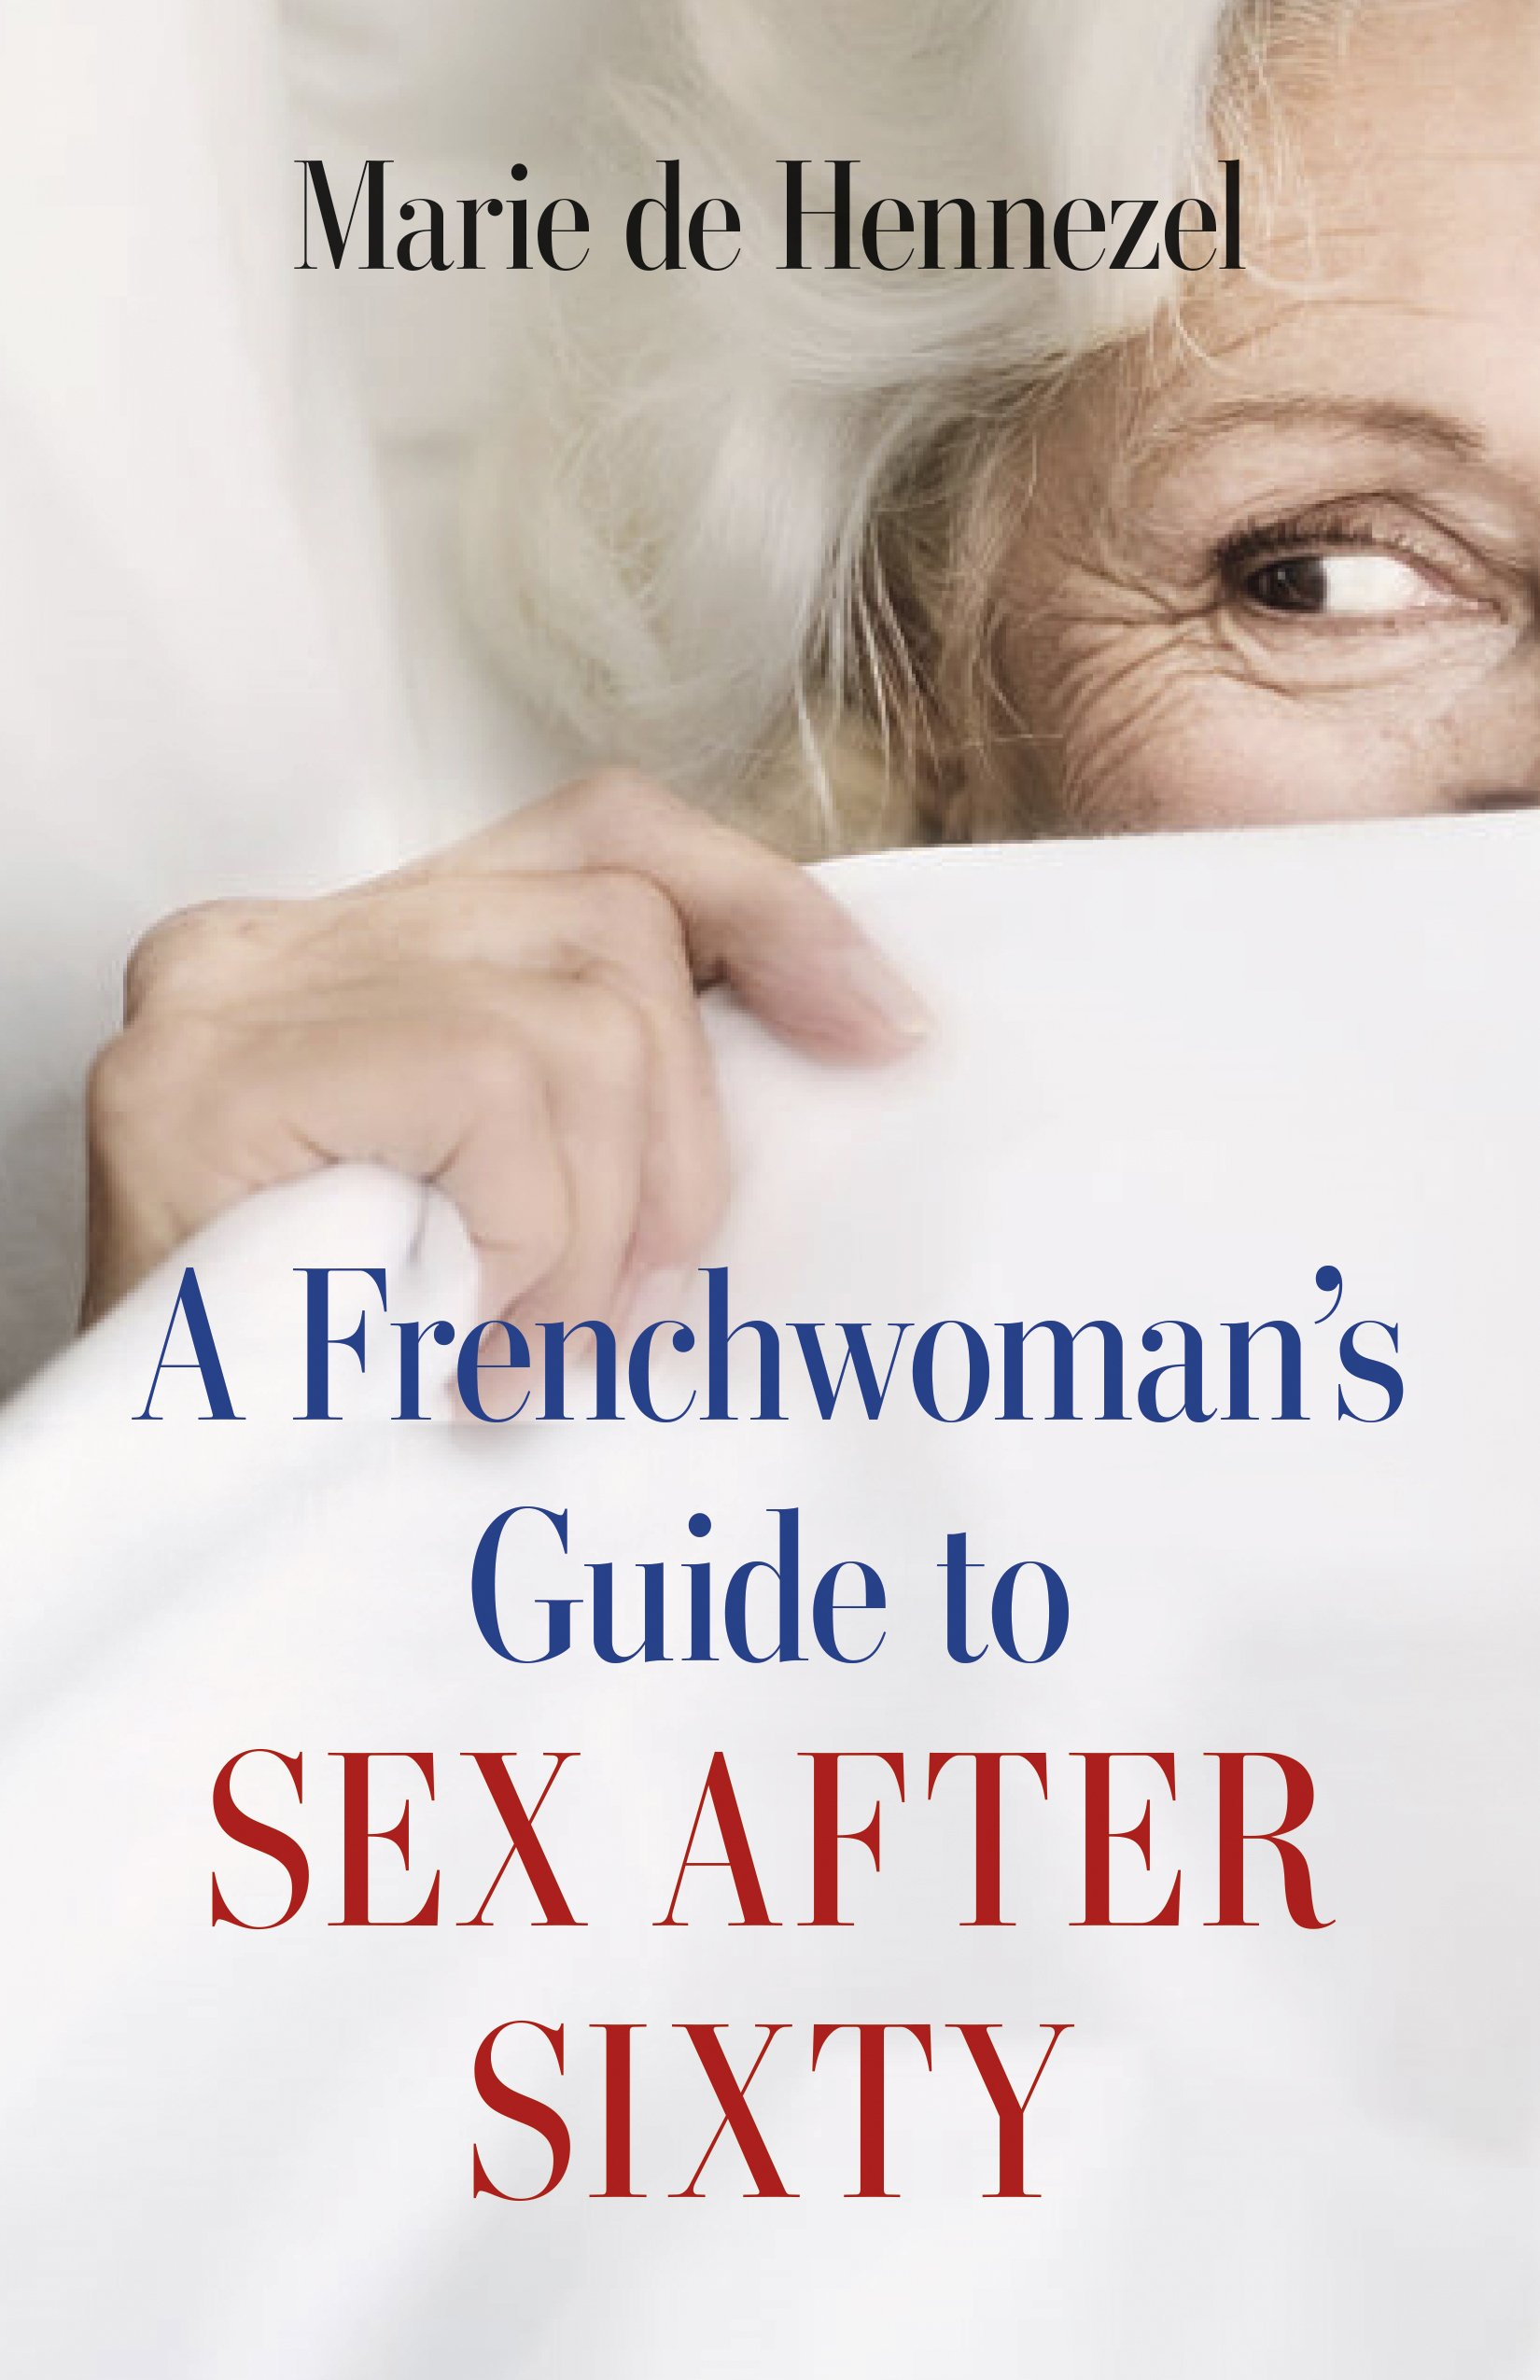 Amazon A Frenchwoman S Guide To Sex After Sixty De Hennezel Marie Women S Studies